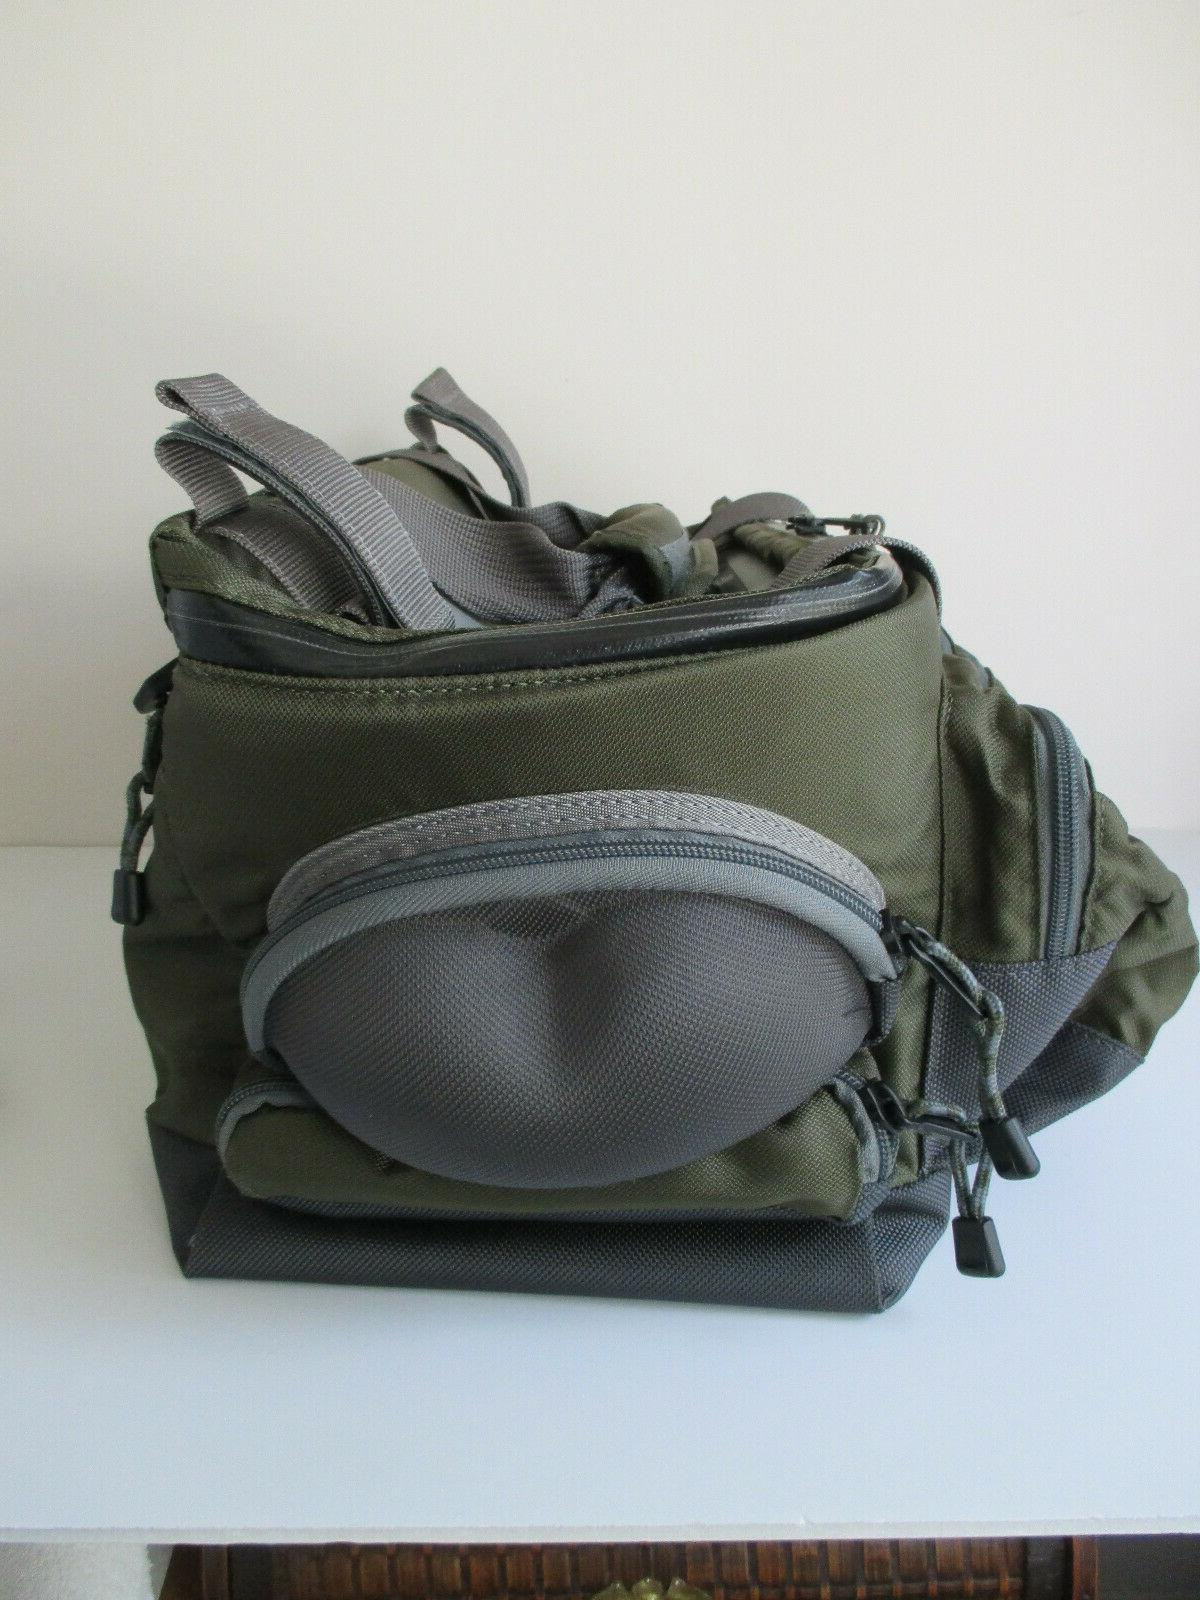 Orvis Multi-Pocket with Strap Green Nylon / USED